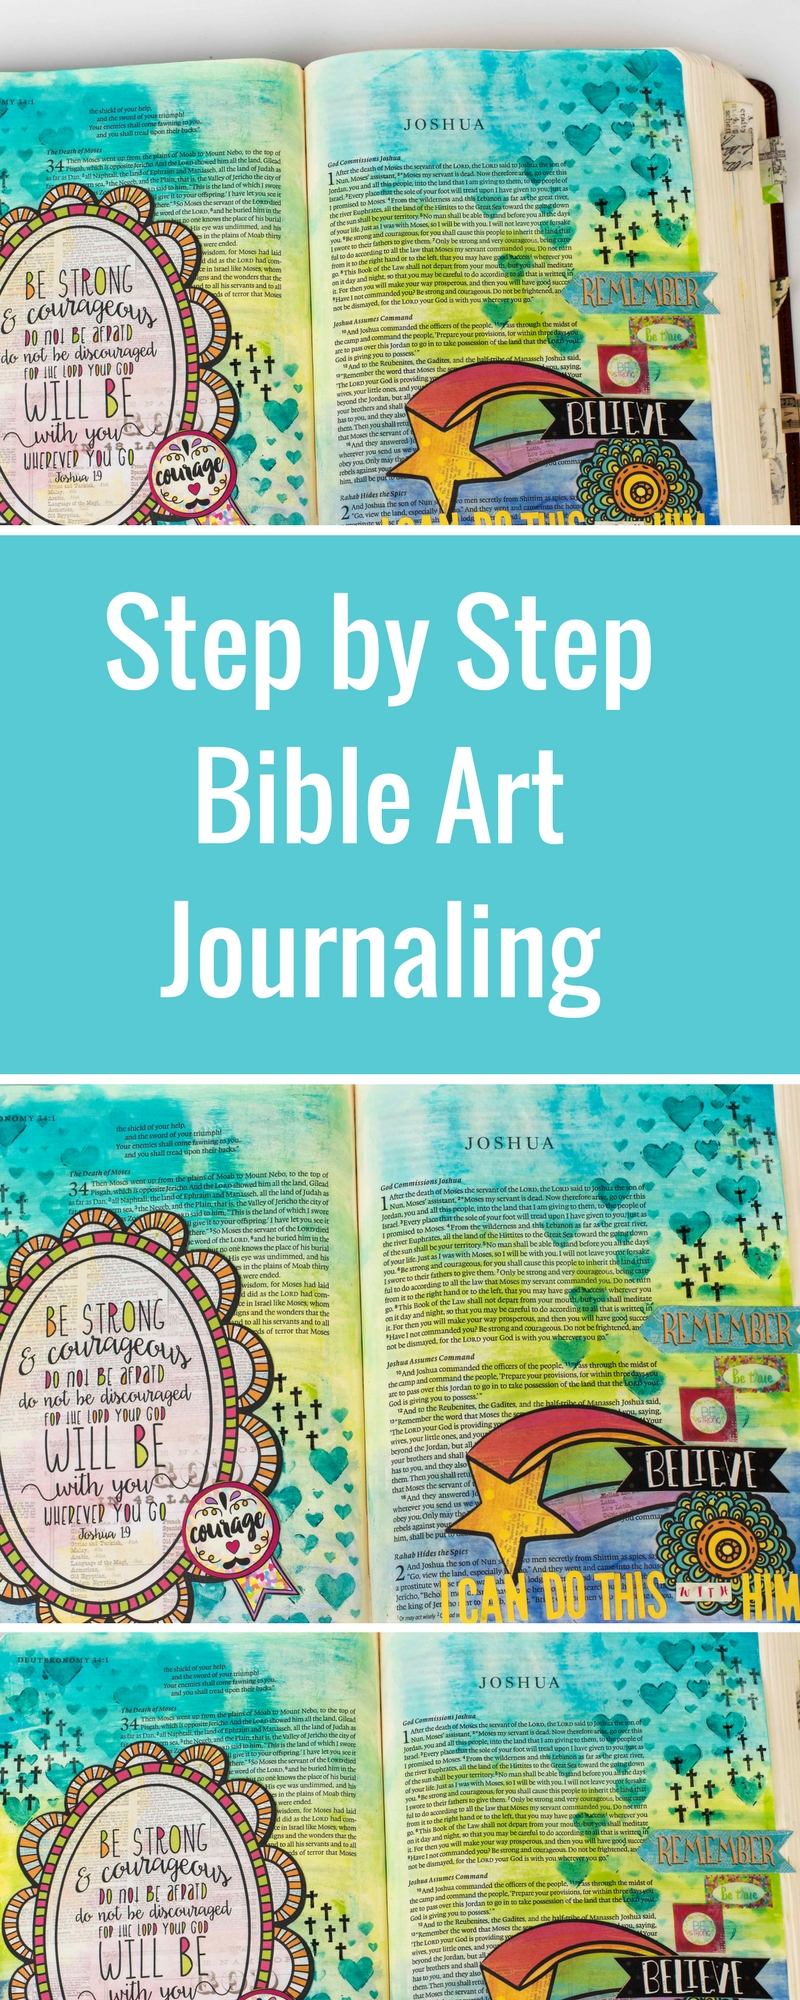 Bible Art Journaling | Featuring Ranger and Bo Bunny | Designed by Christy Riopel | Creative Scrapbooker Magazine #bible #art #journaling